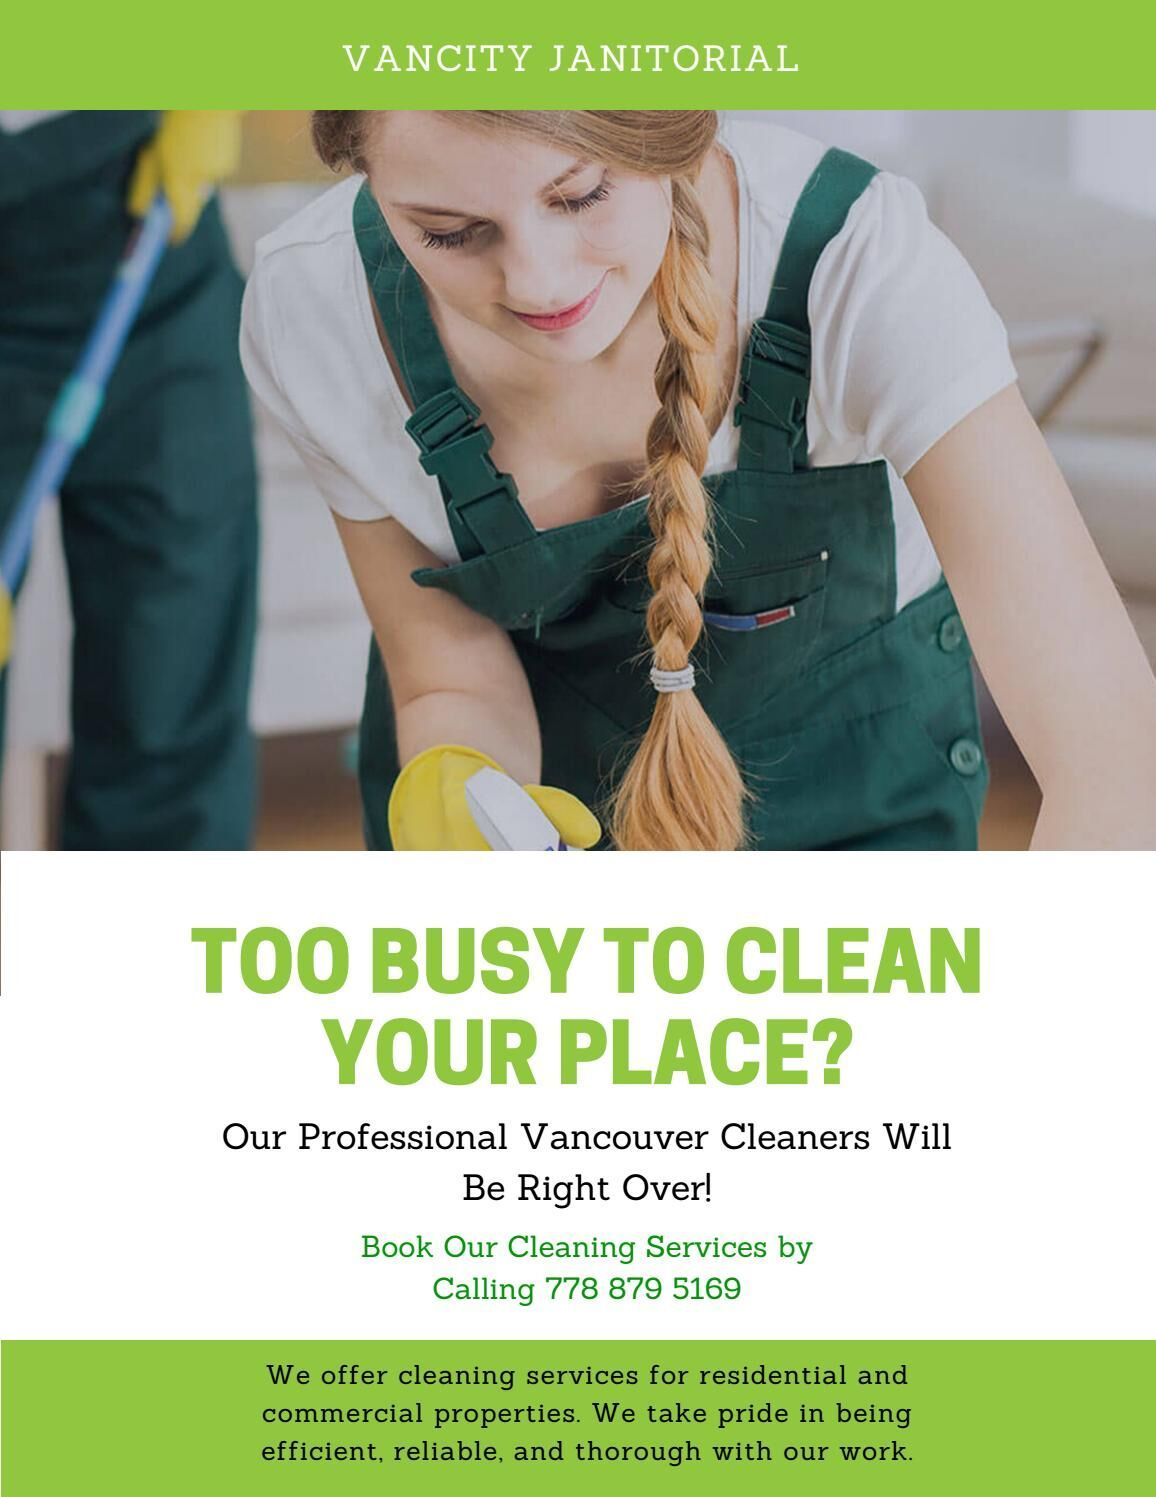 Vancouver Cleaning Services Vancity Janitorial Call Us